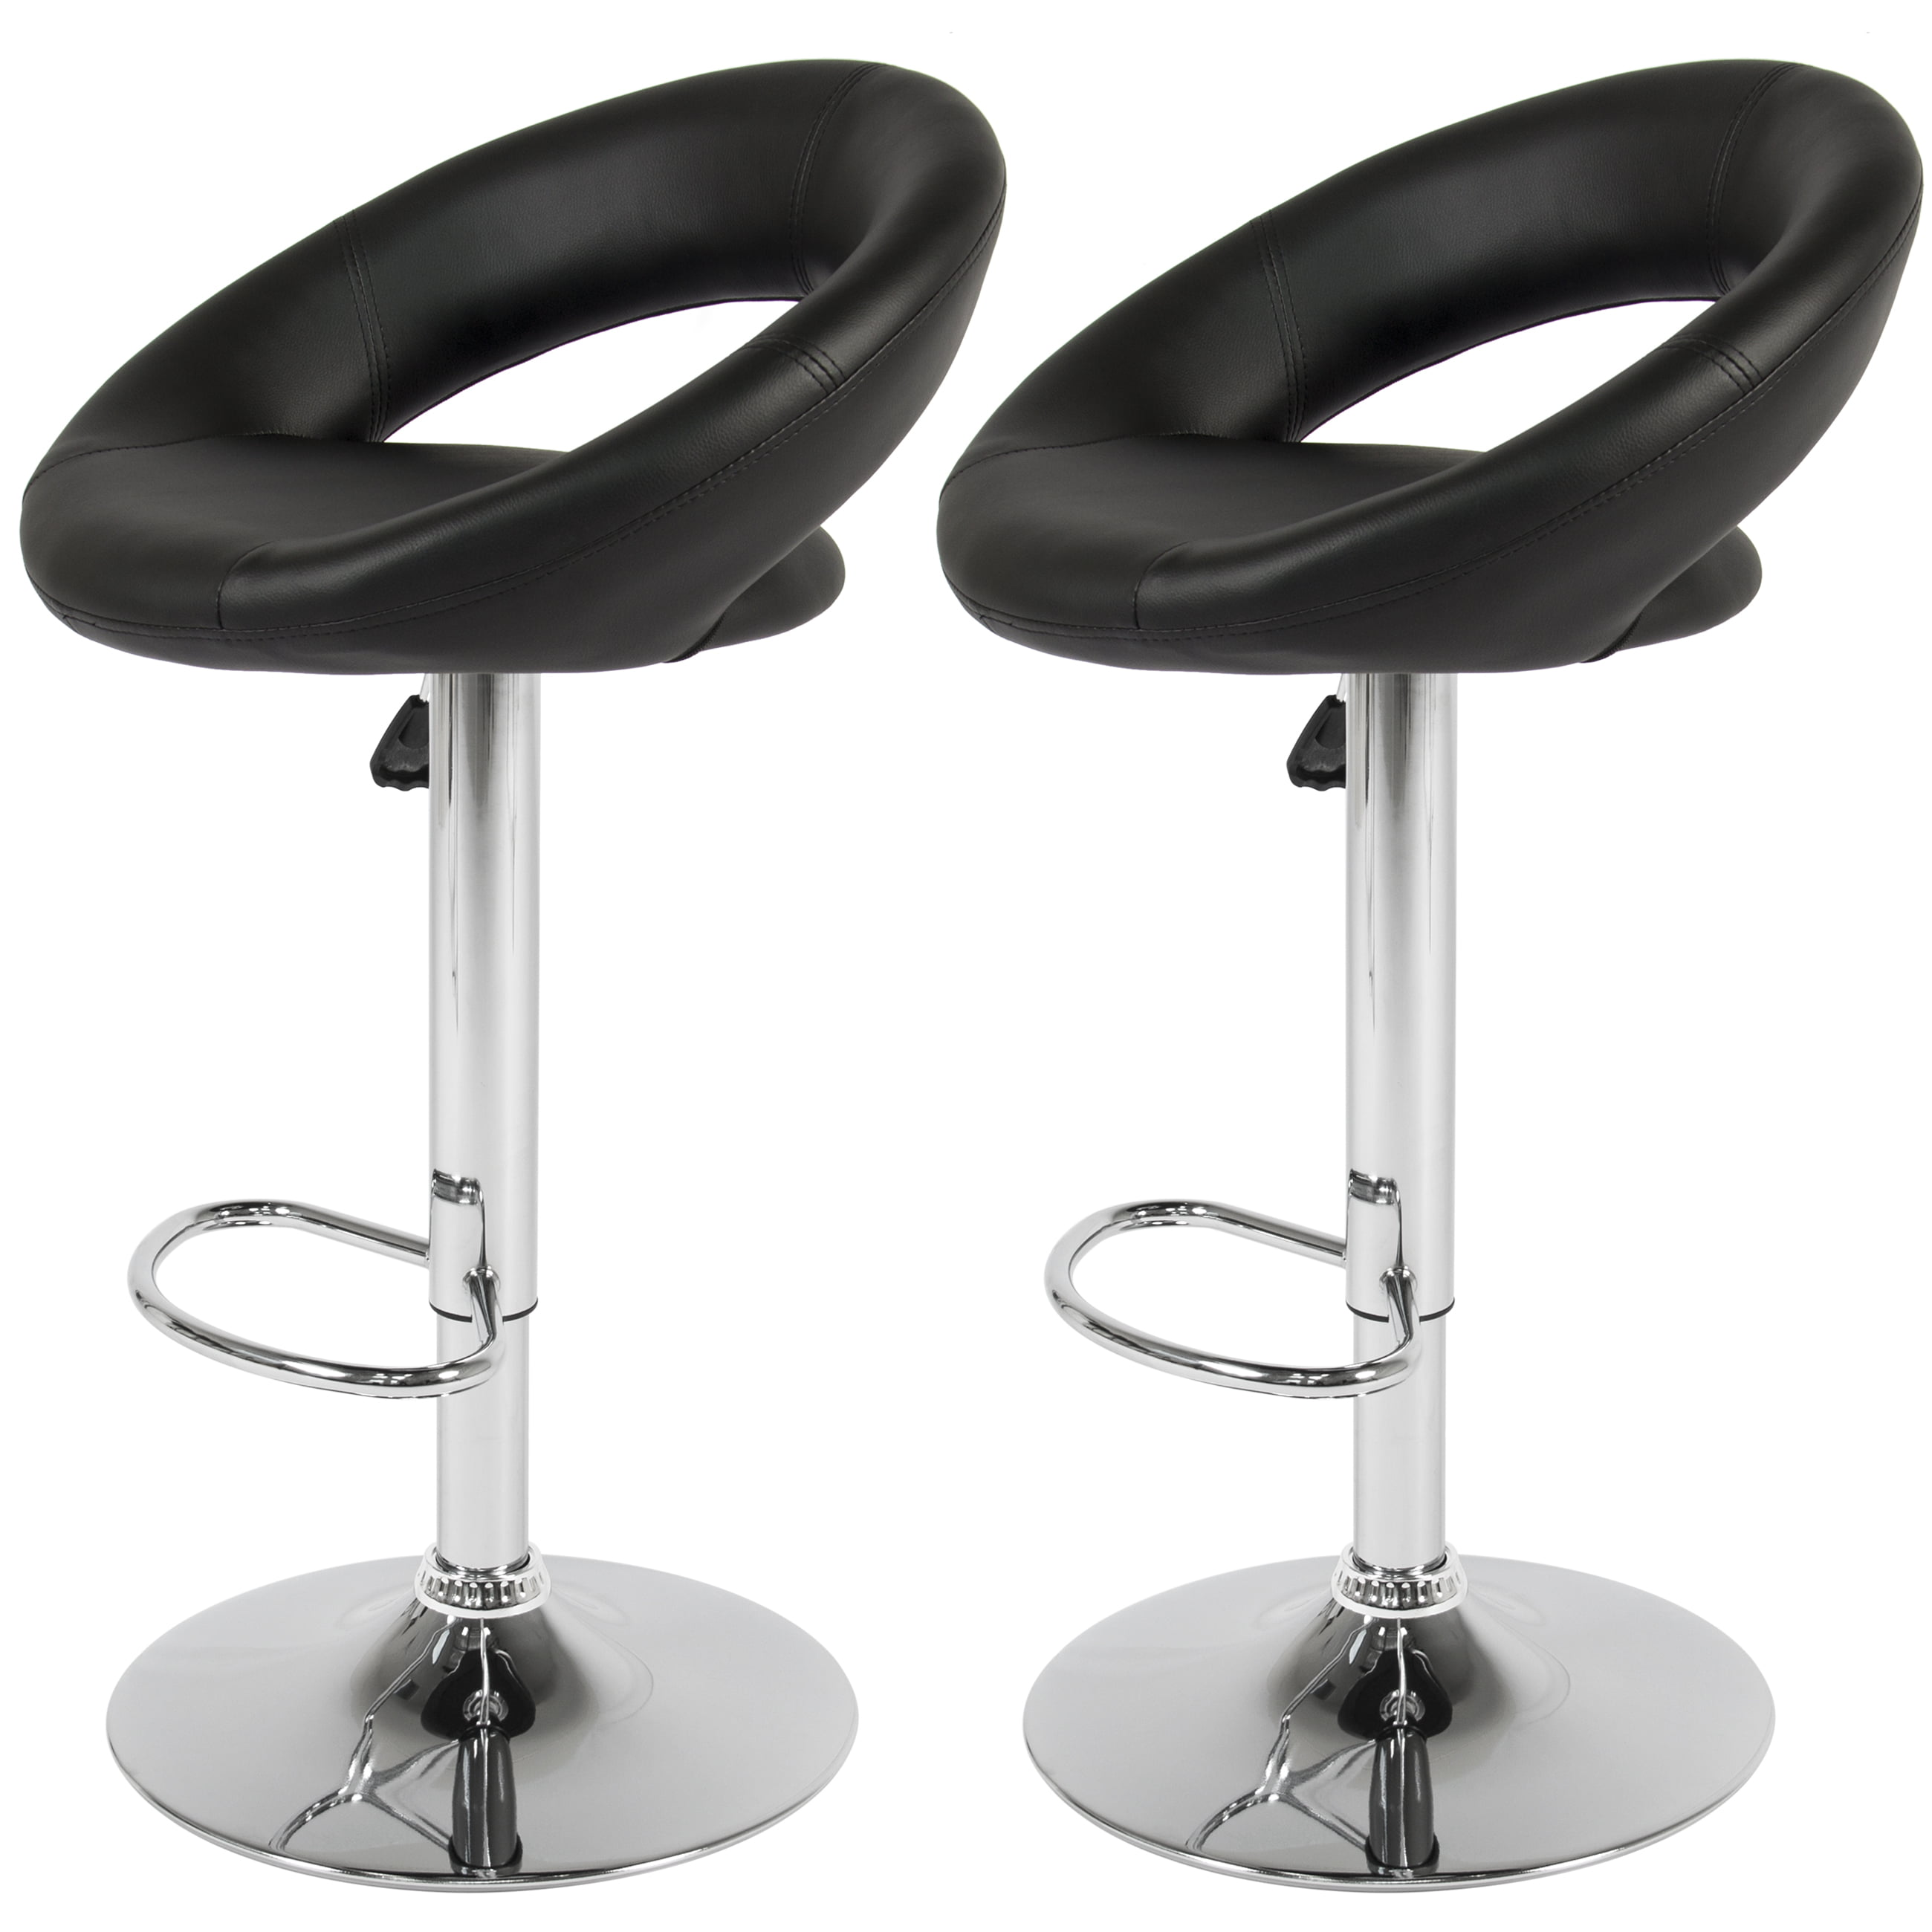 Bcp Set Of 2 Pu Leather Adjule Swivel Bar Stool Hydraulic